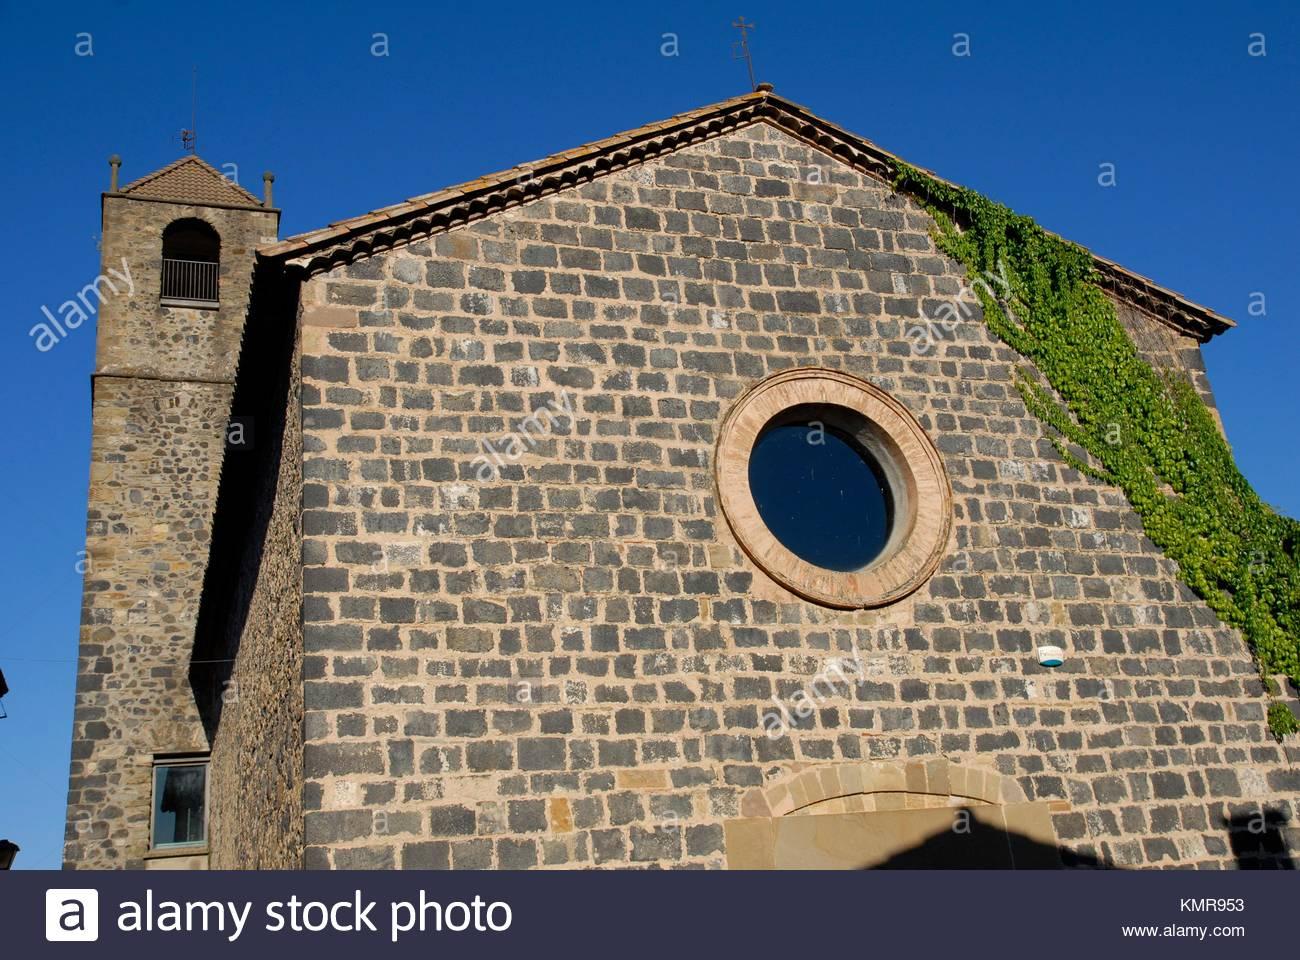 church in Castellfollit de la Roca, Parque Natural de la Zona Volcánica de la Garrotxa, Girona, Cataluña, Spain Stock Photo